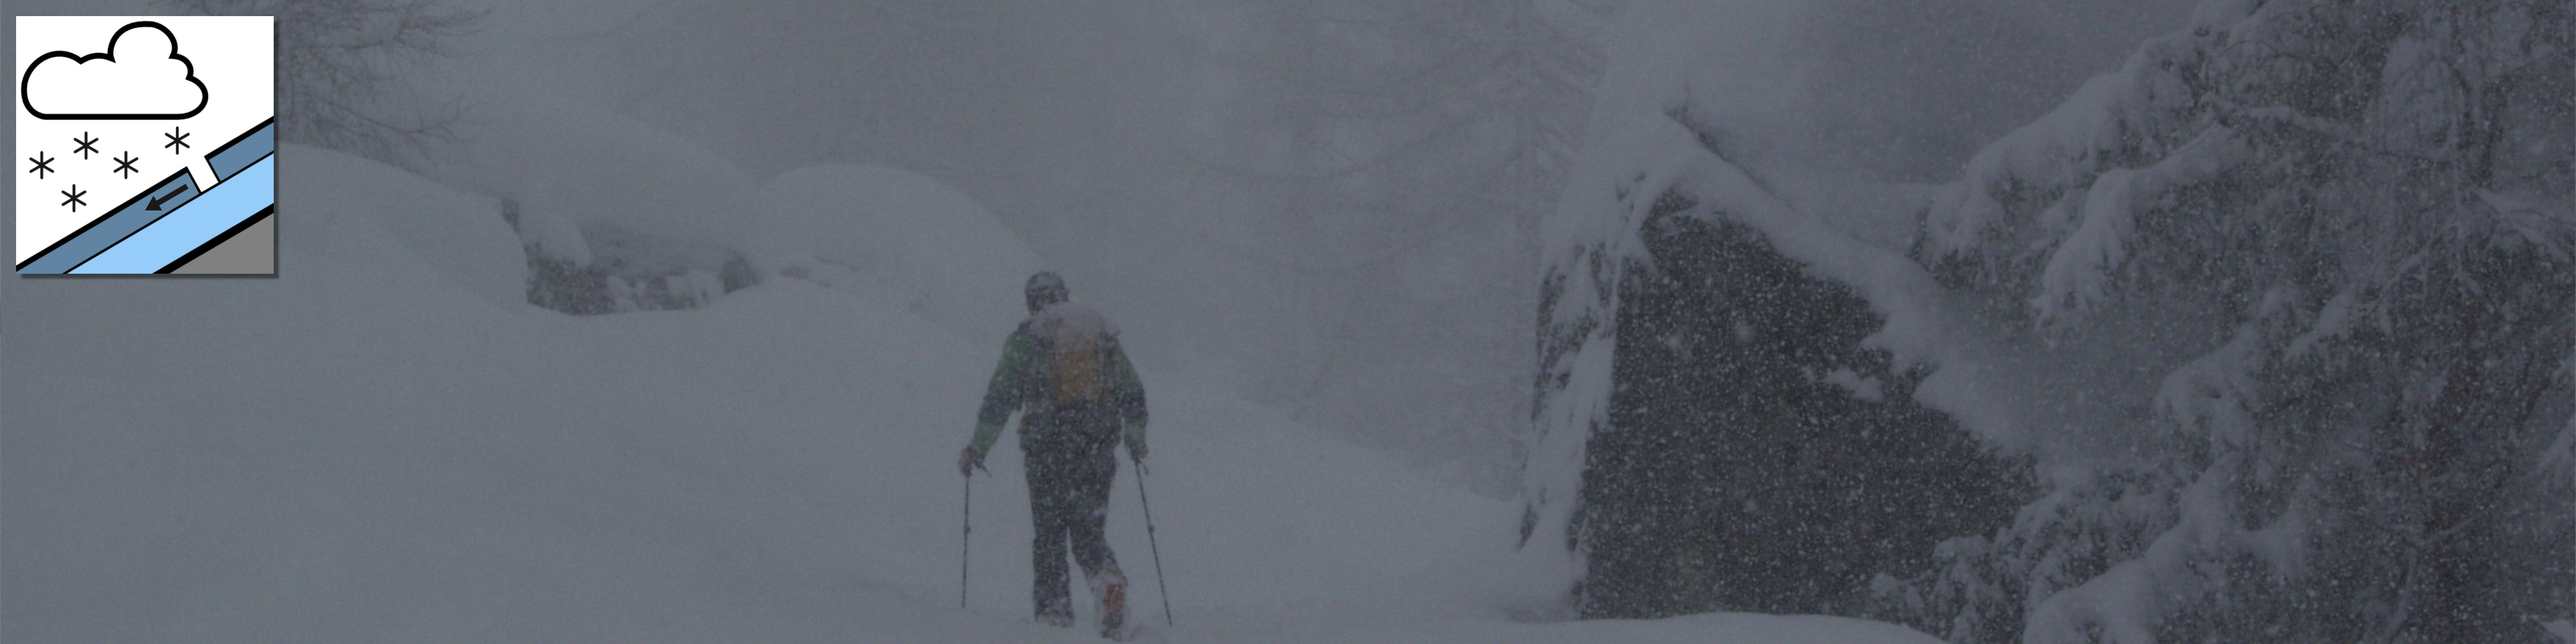 Avalanche problems new snow | EAWS European Avalanche Warning Services